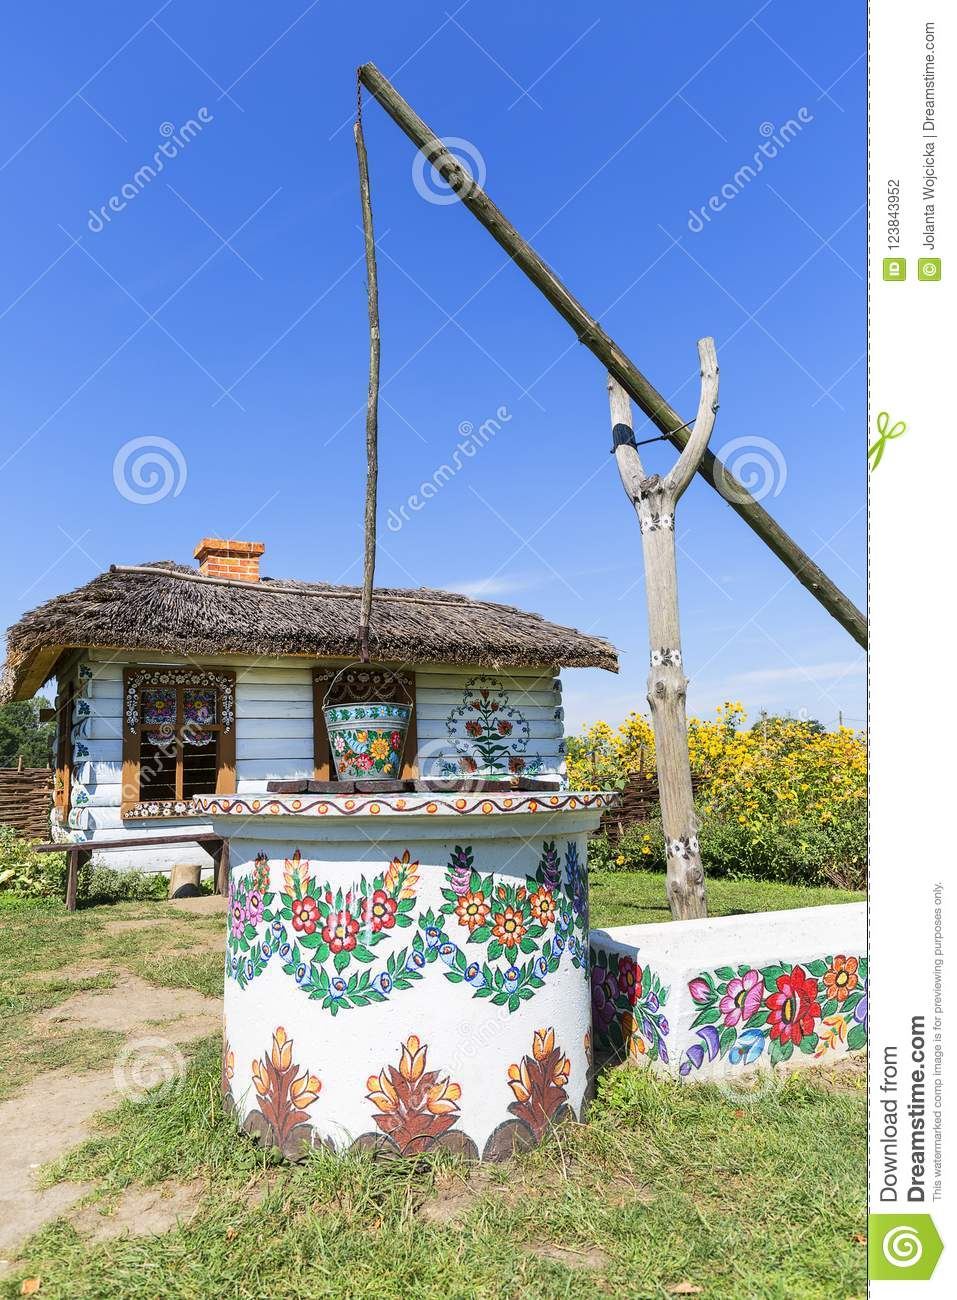 Painted old wooden cottage, well and pail,folk art, Zalipie, Poland